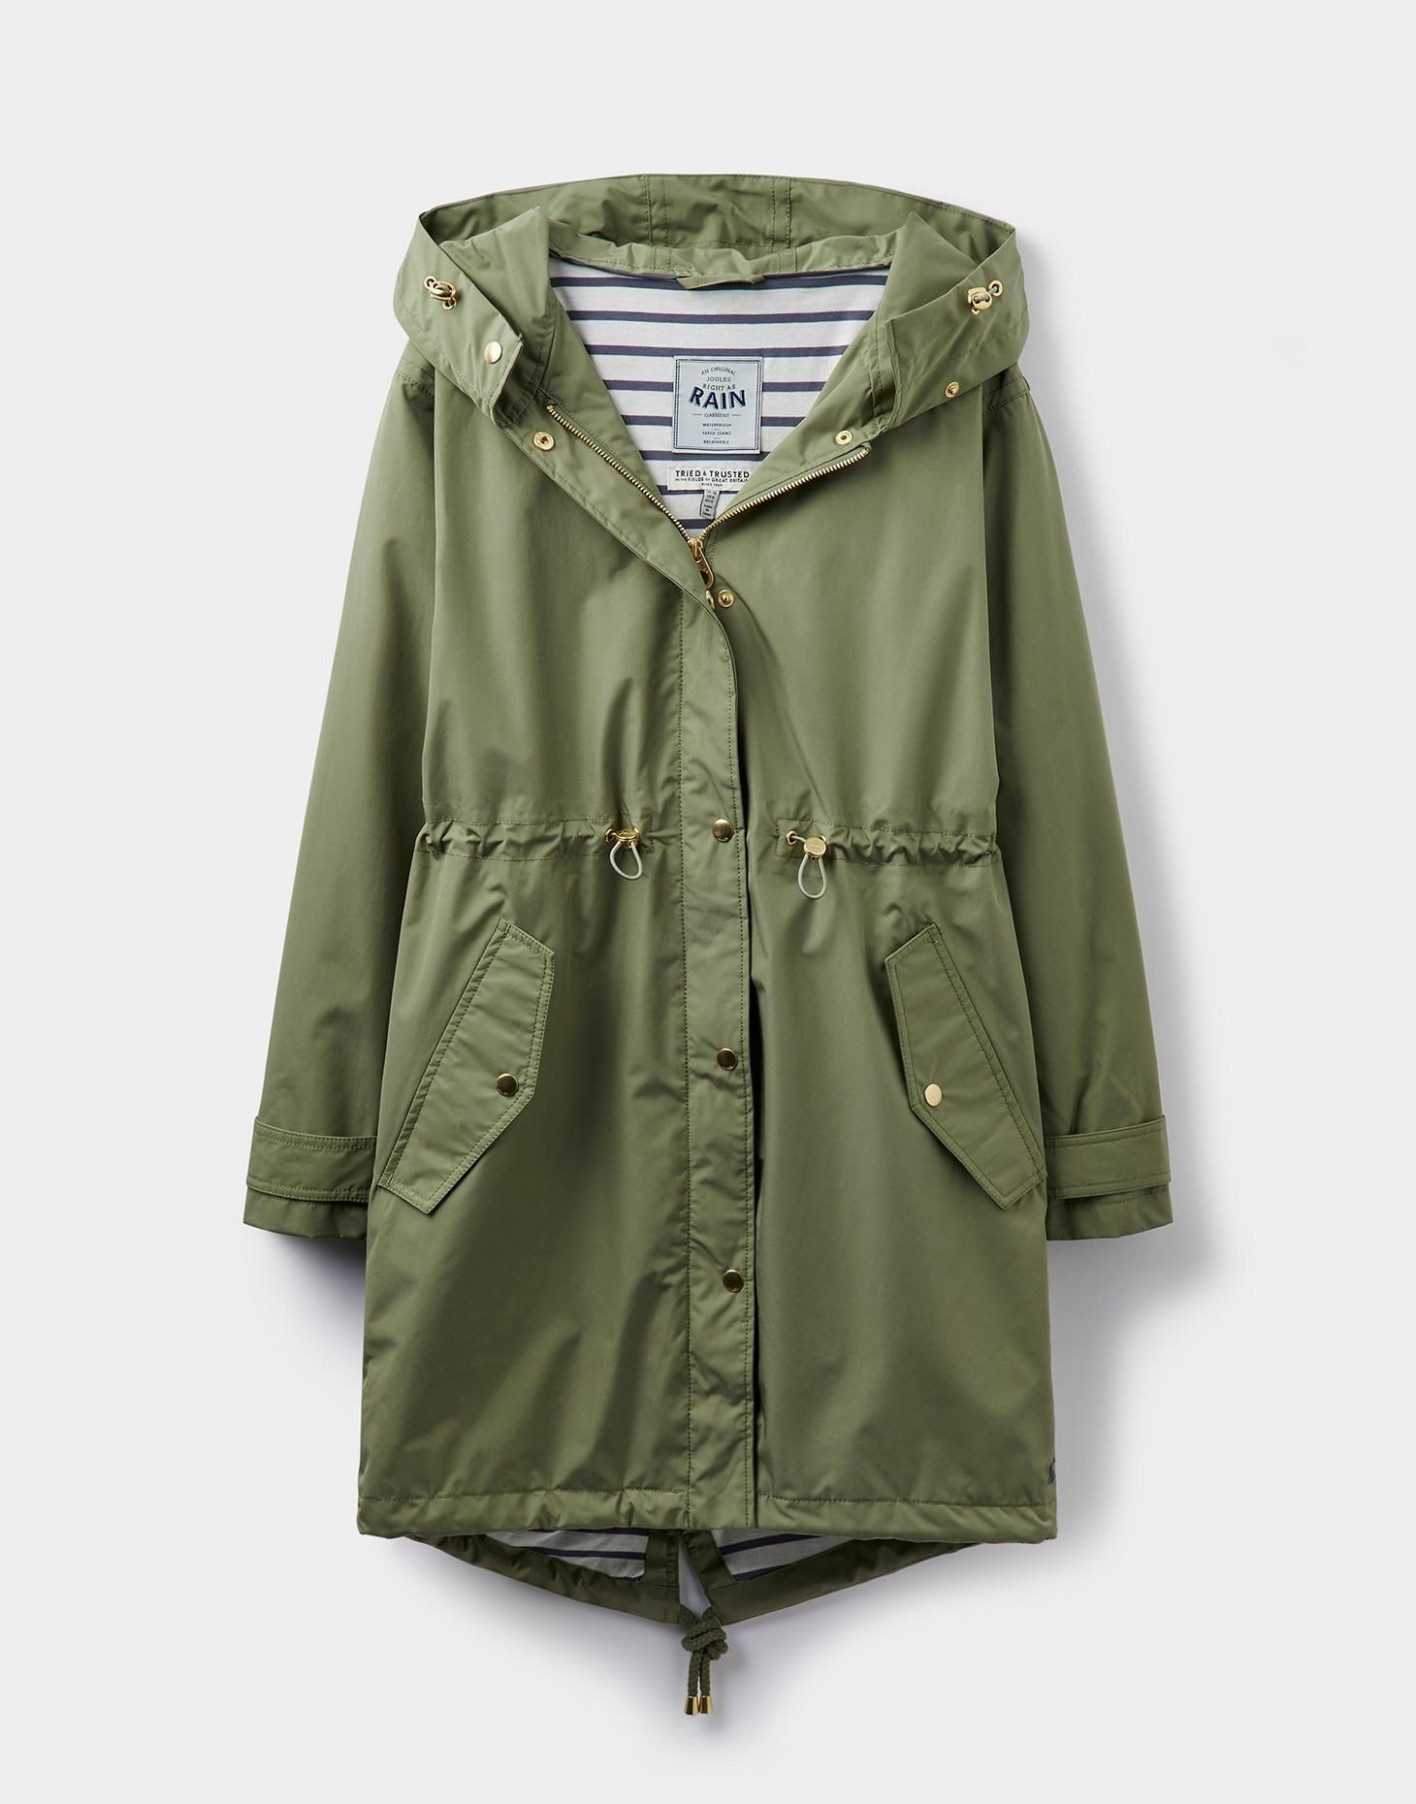 swithin soft khaki parka style waterproof jacket joules us parker kleidung